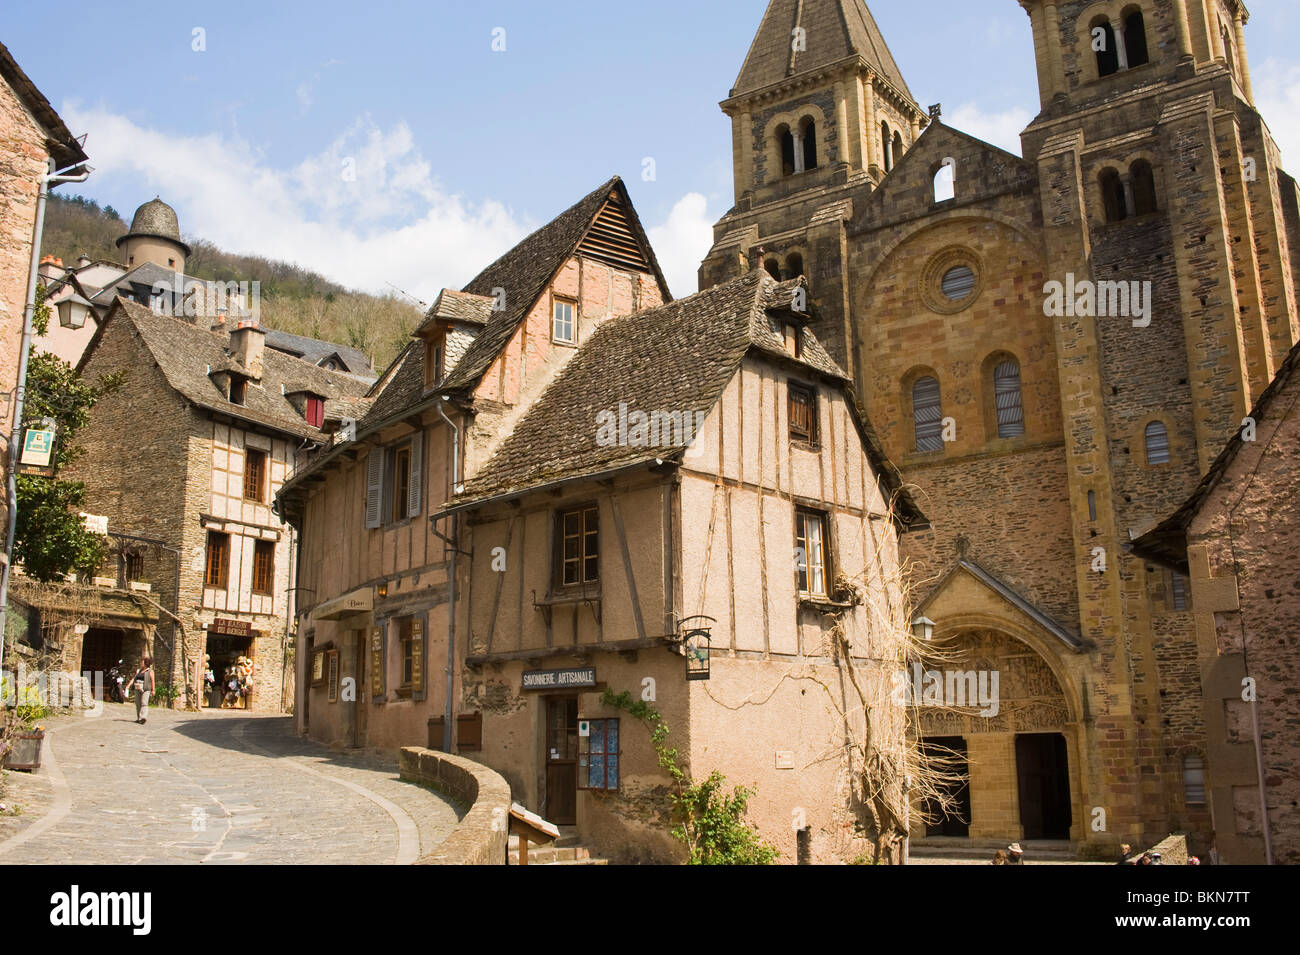 The Beautiful Medieval Historic Town Of Conques With Famous